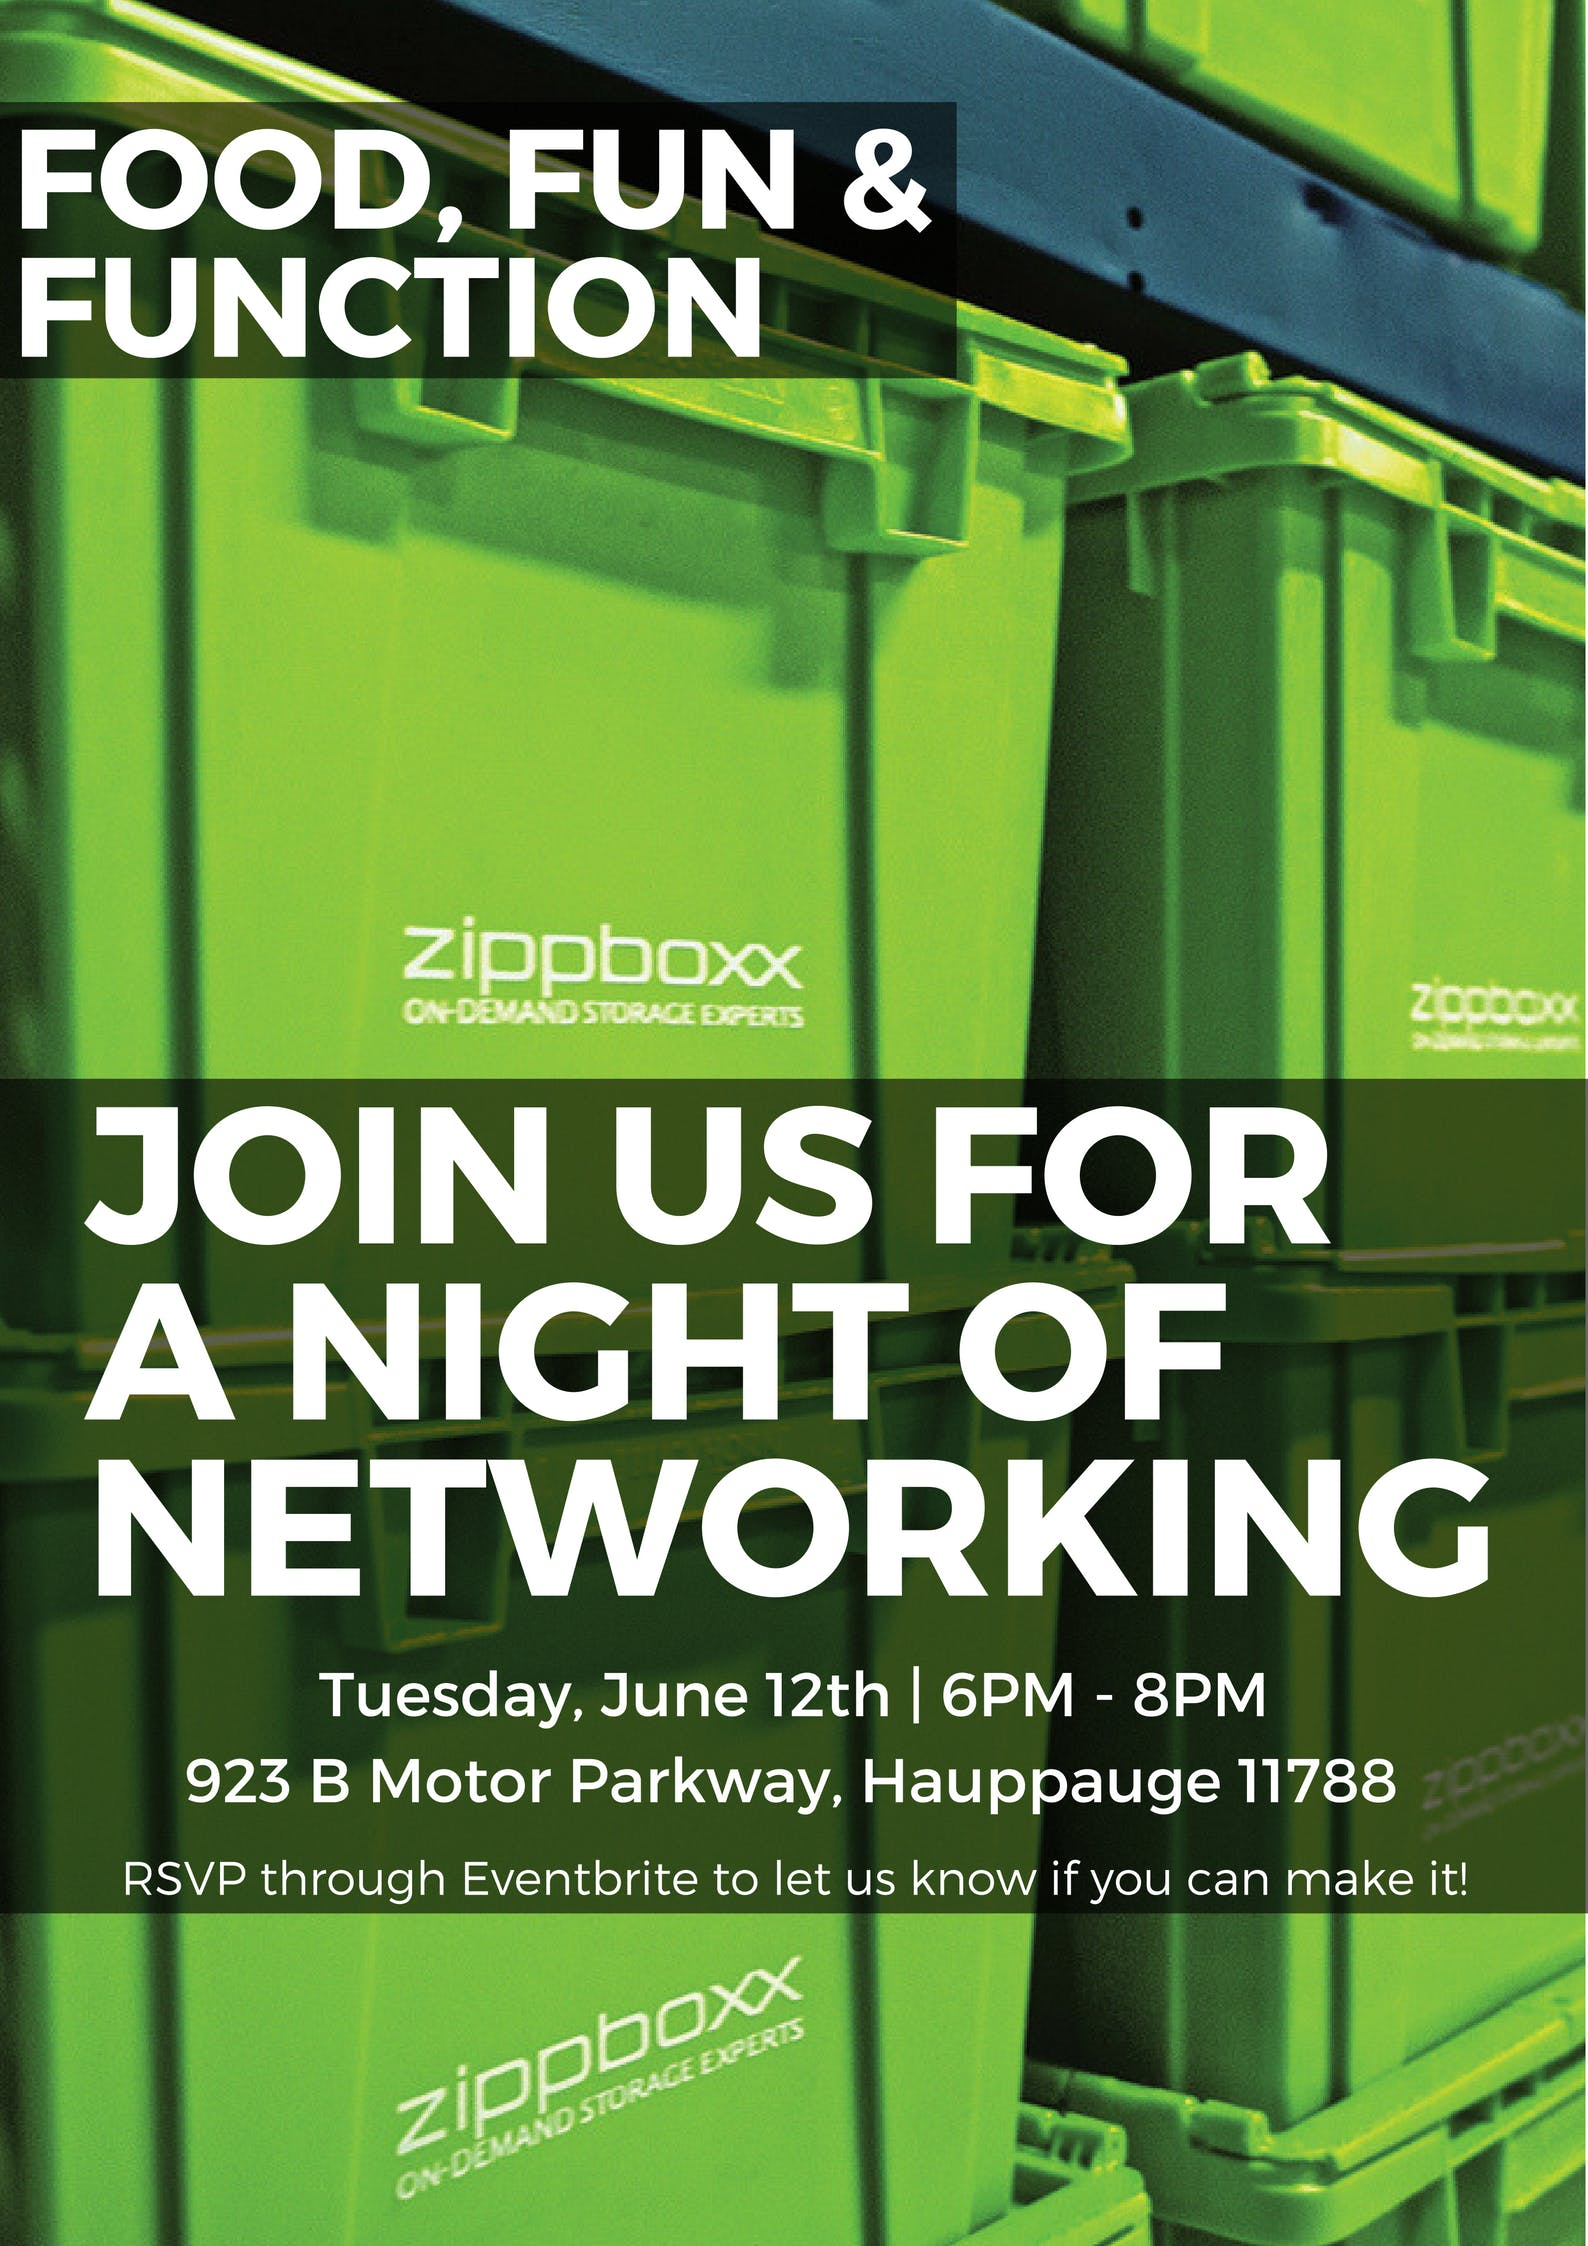 A Night of Networking at Zippboxx with David Gussin of 631Ads & 516Ads